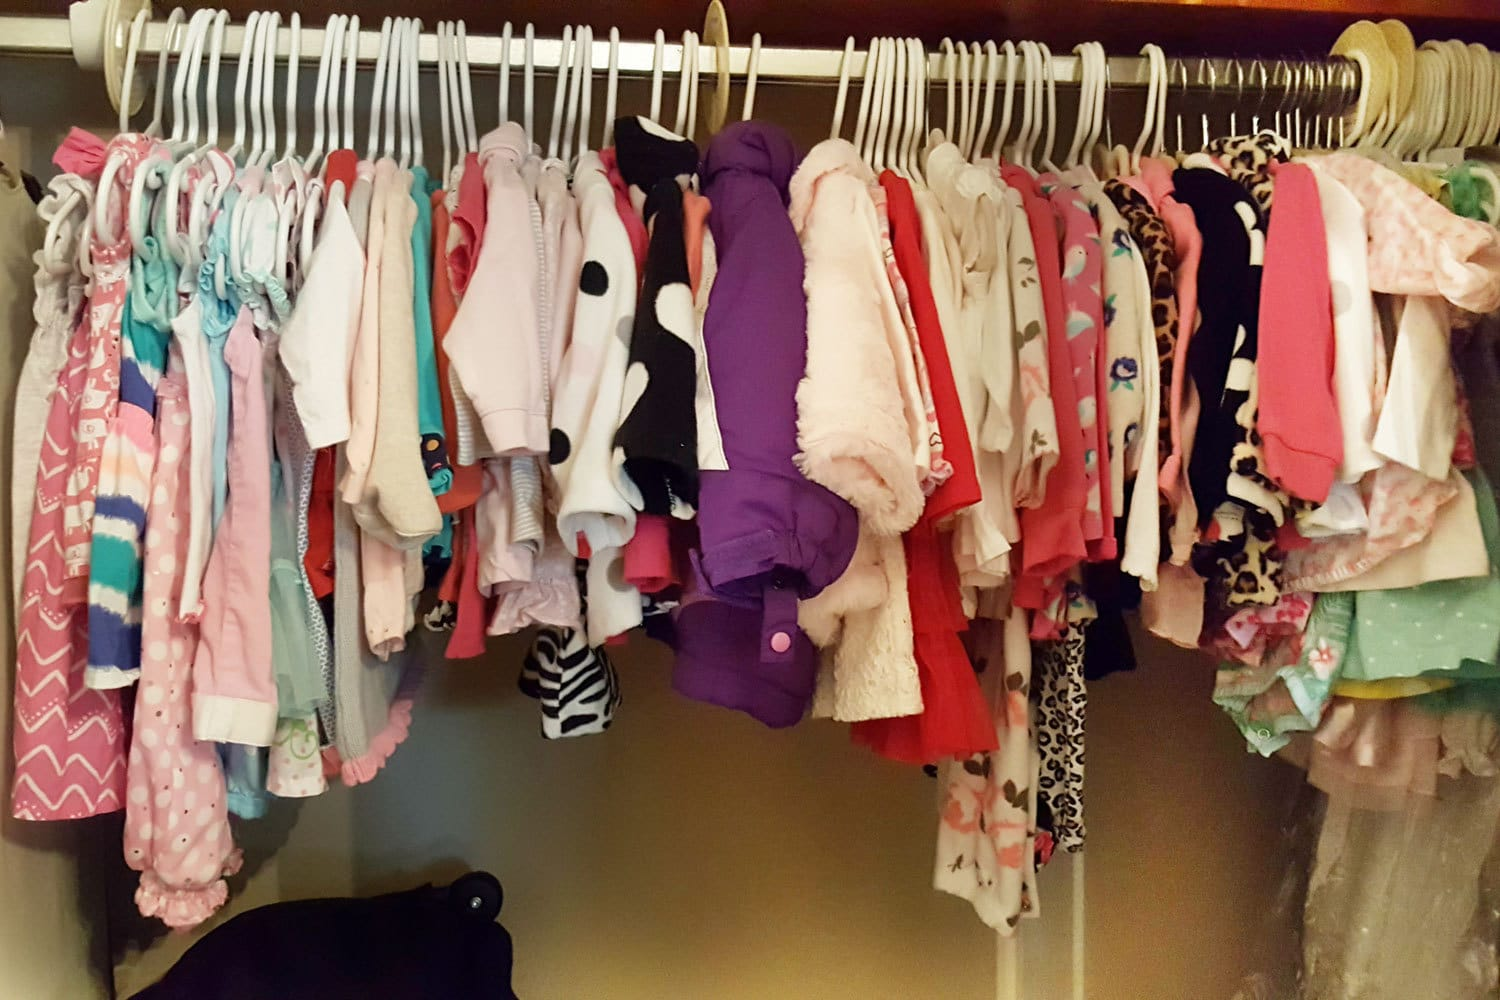 Baby Consignment Clothes: 8 Must-Know Tips Before Buying, featured on the Southern Momdays blog